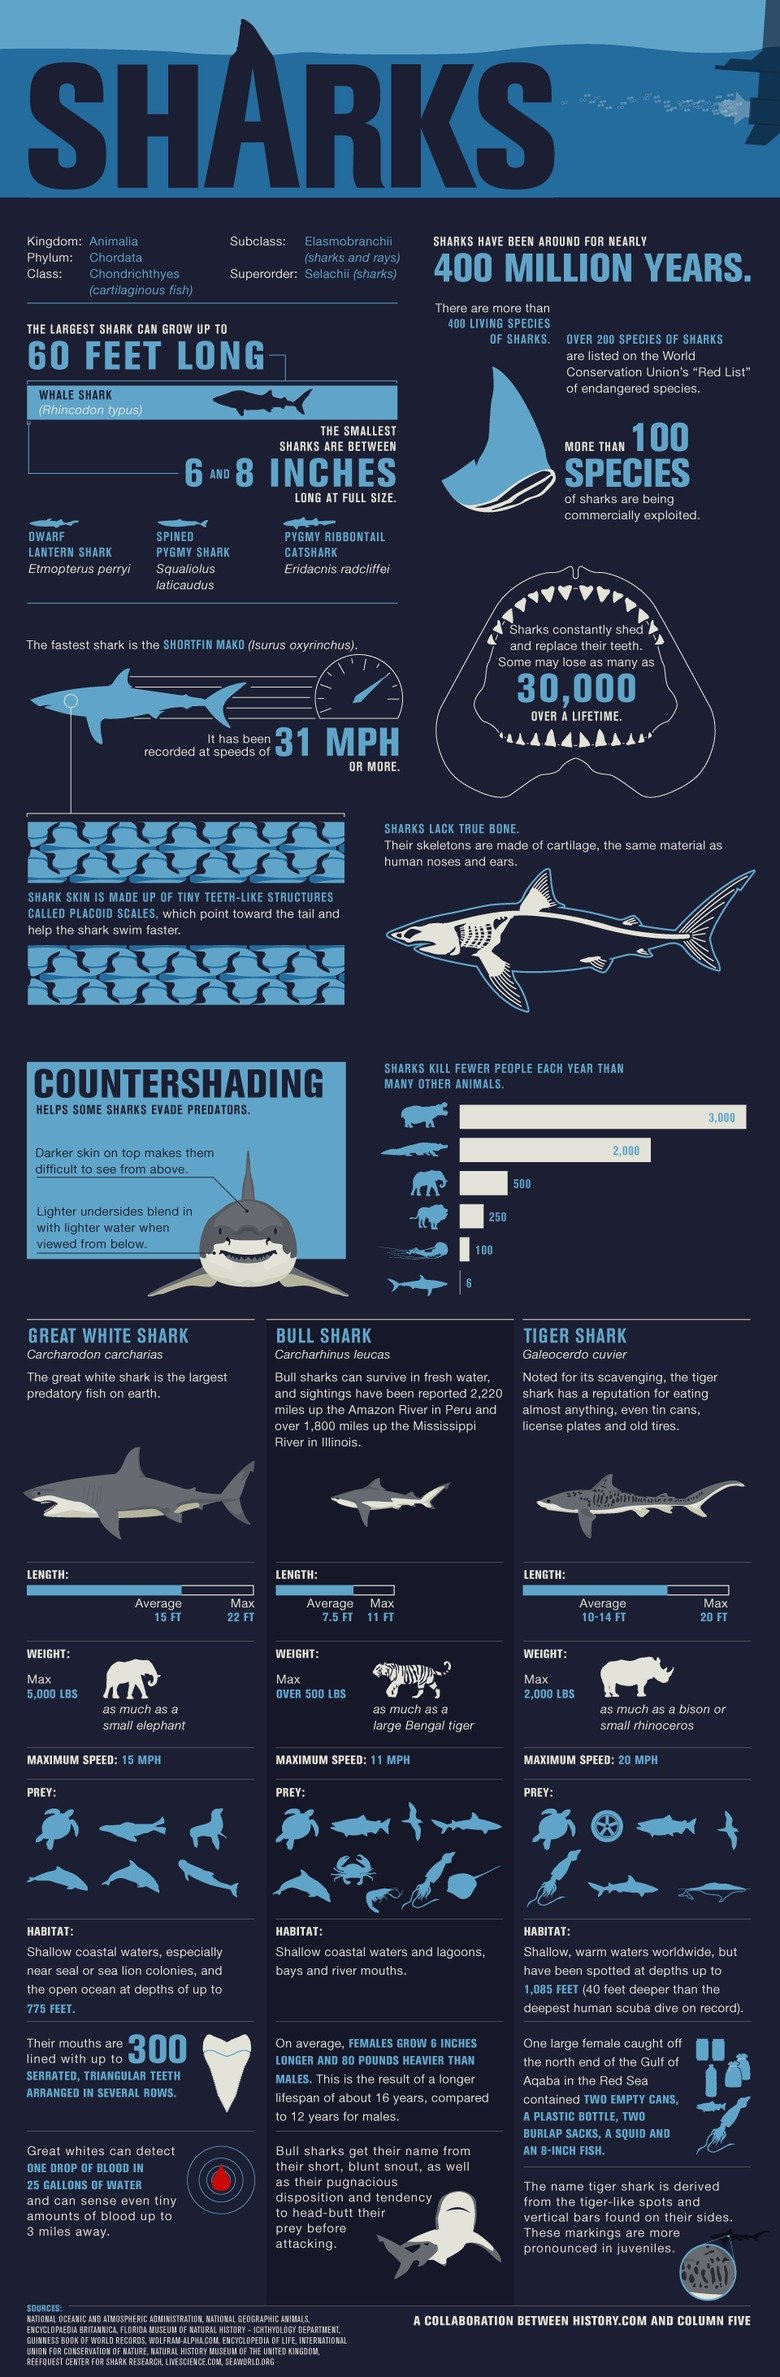 Sharks, the most BAMFers out there.. . Kingdom Phylum: Class: THE LARGEST SHARK DAN MOW UP N 60 FEET LONG SHARKS HAVE DEER FDR 400 MILLION YEARS. There are more